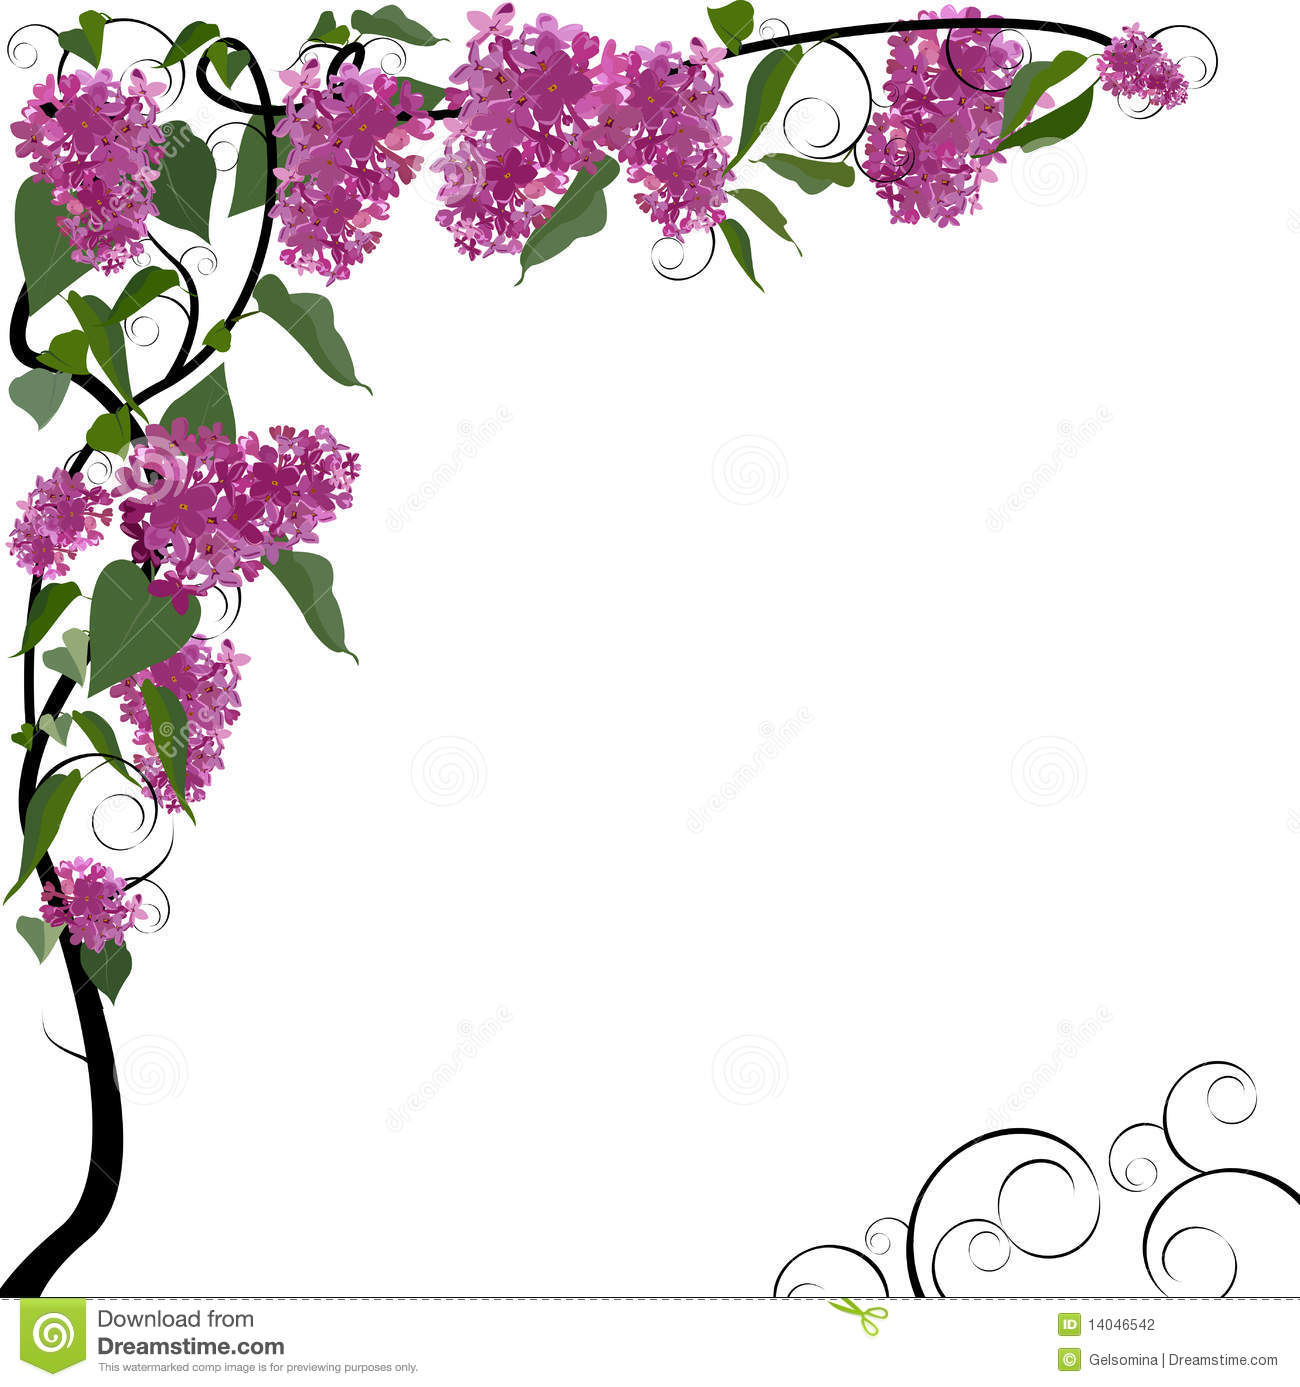 vector floral border stock vector illustration of abstract 14046542 rh dreamstime com flower border vector free download flower border vector